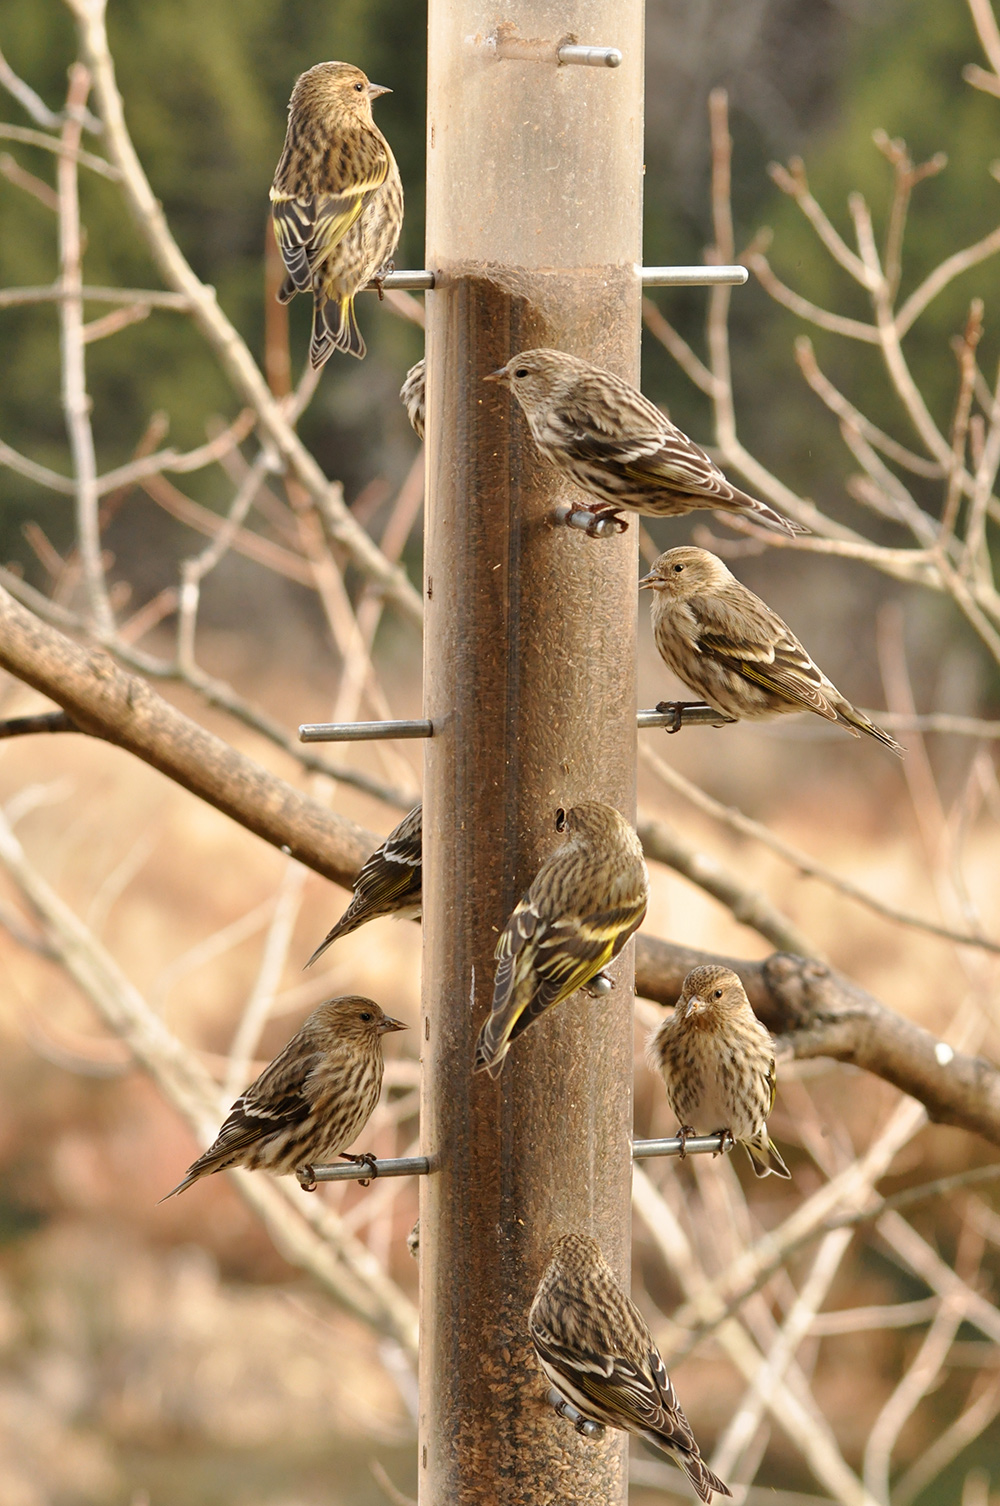 Photo of several pine siskins perched around a vertical bird seed feeder.